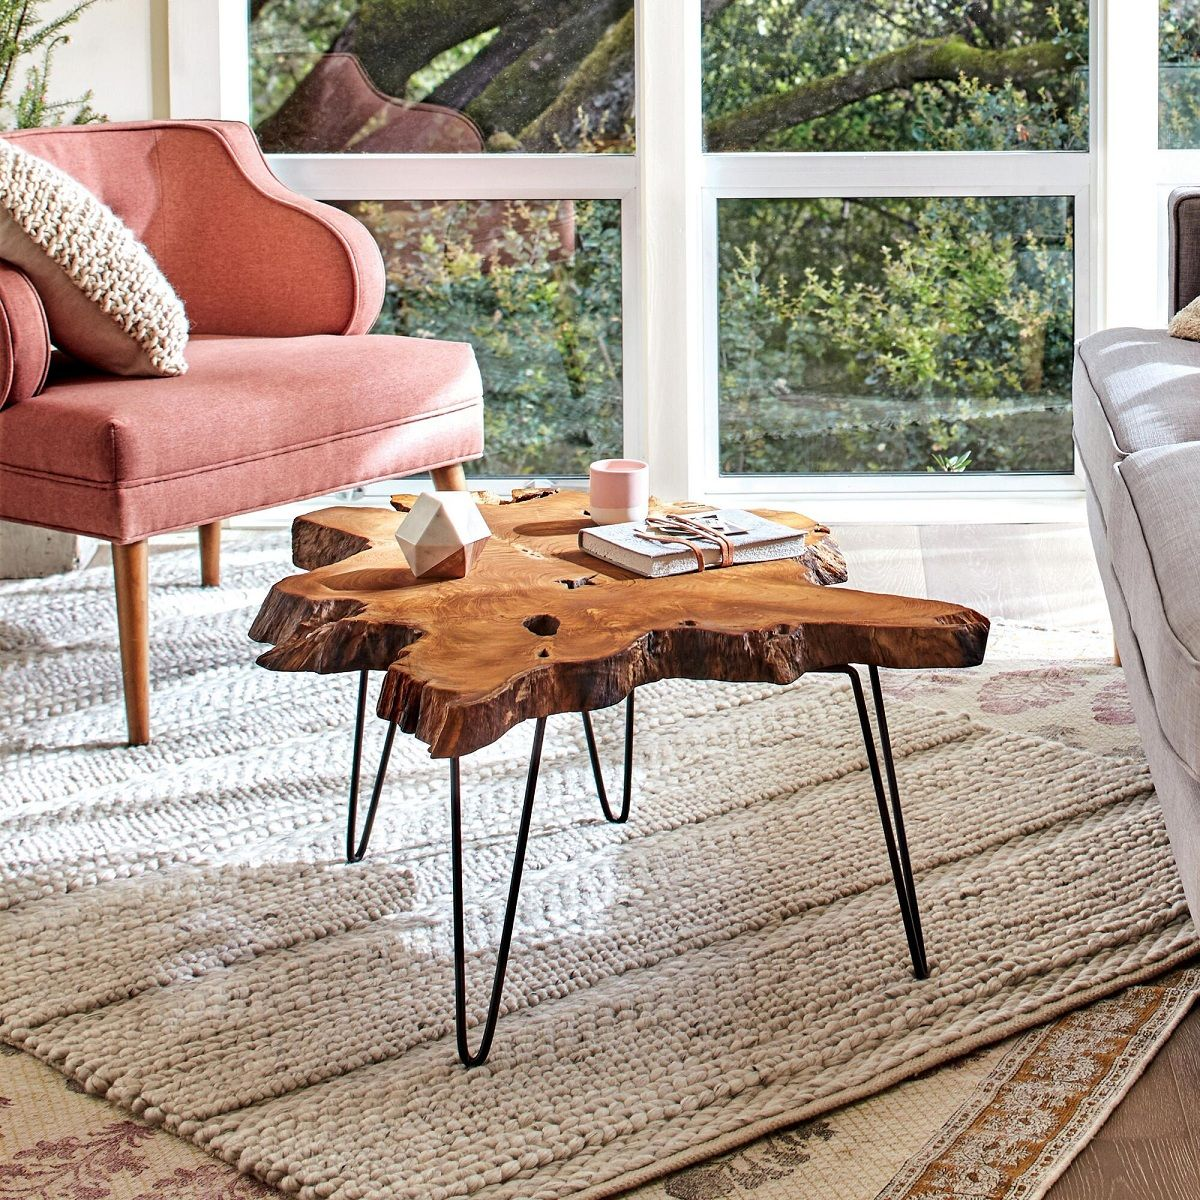 Rustic Wood Slice Coffee Table: Easy Assembly Crafted Teak Wood Slab Coffee Table With